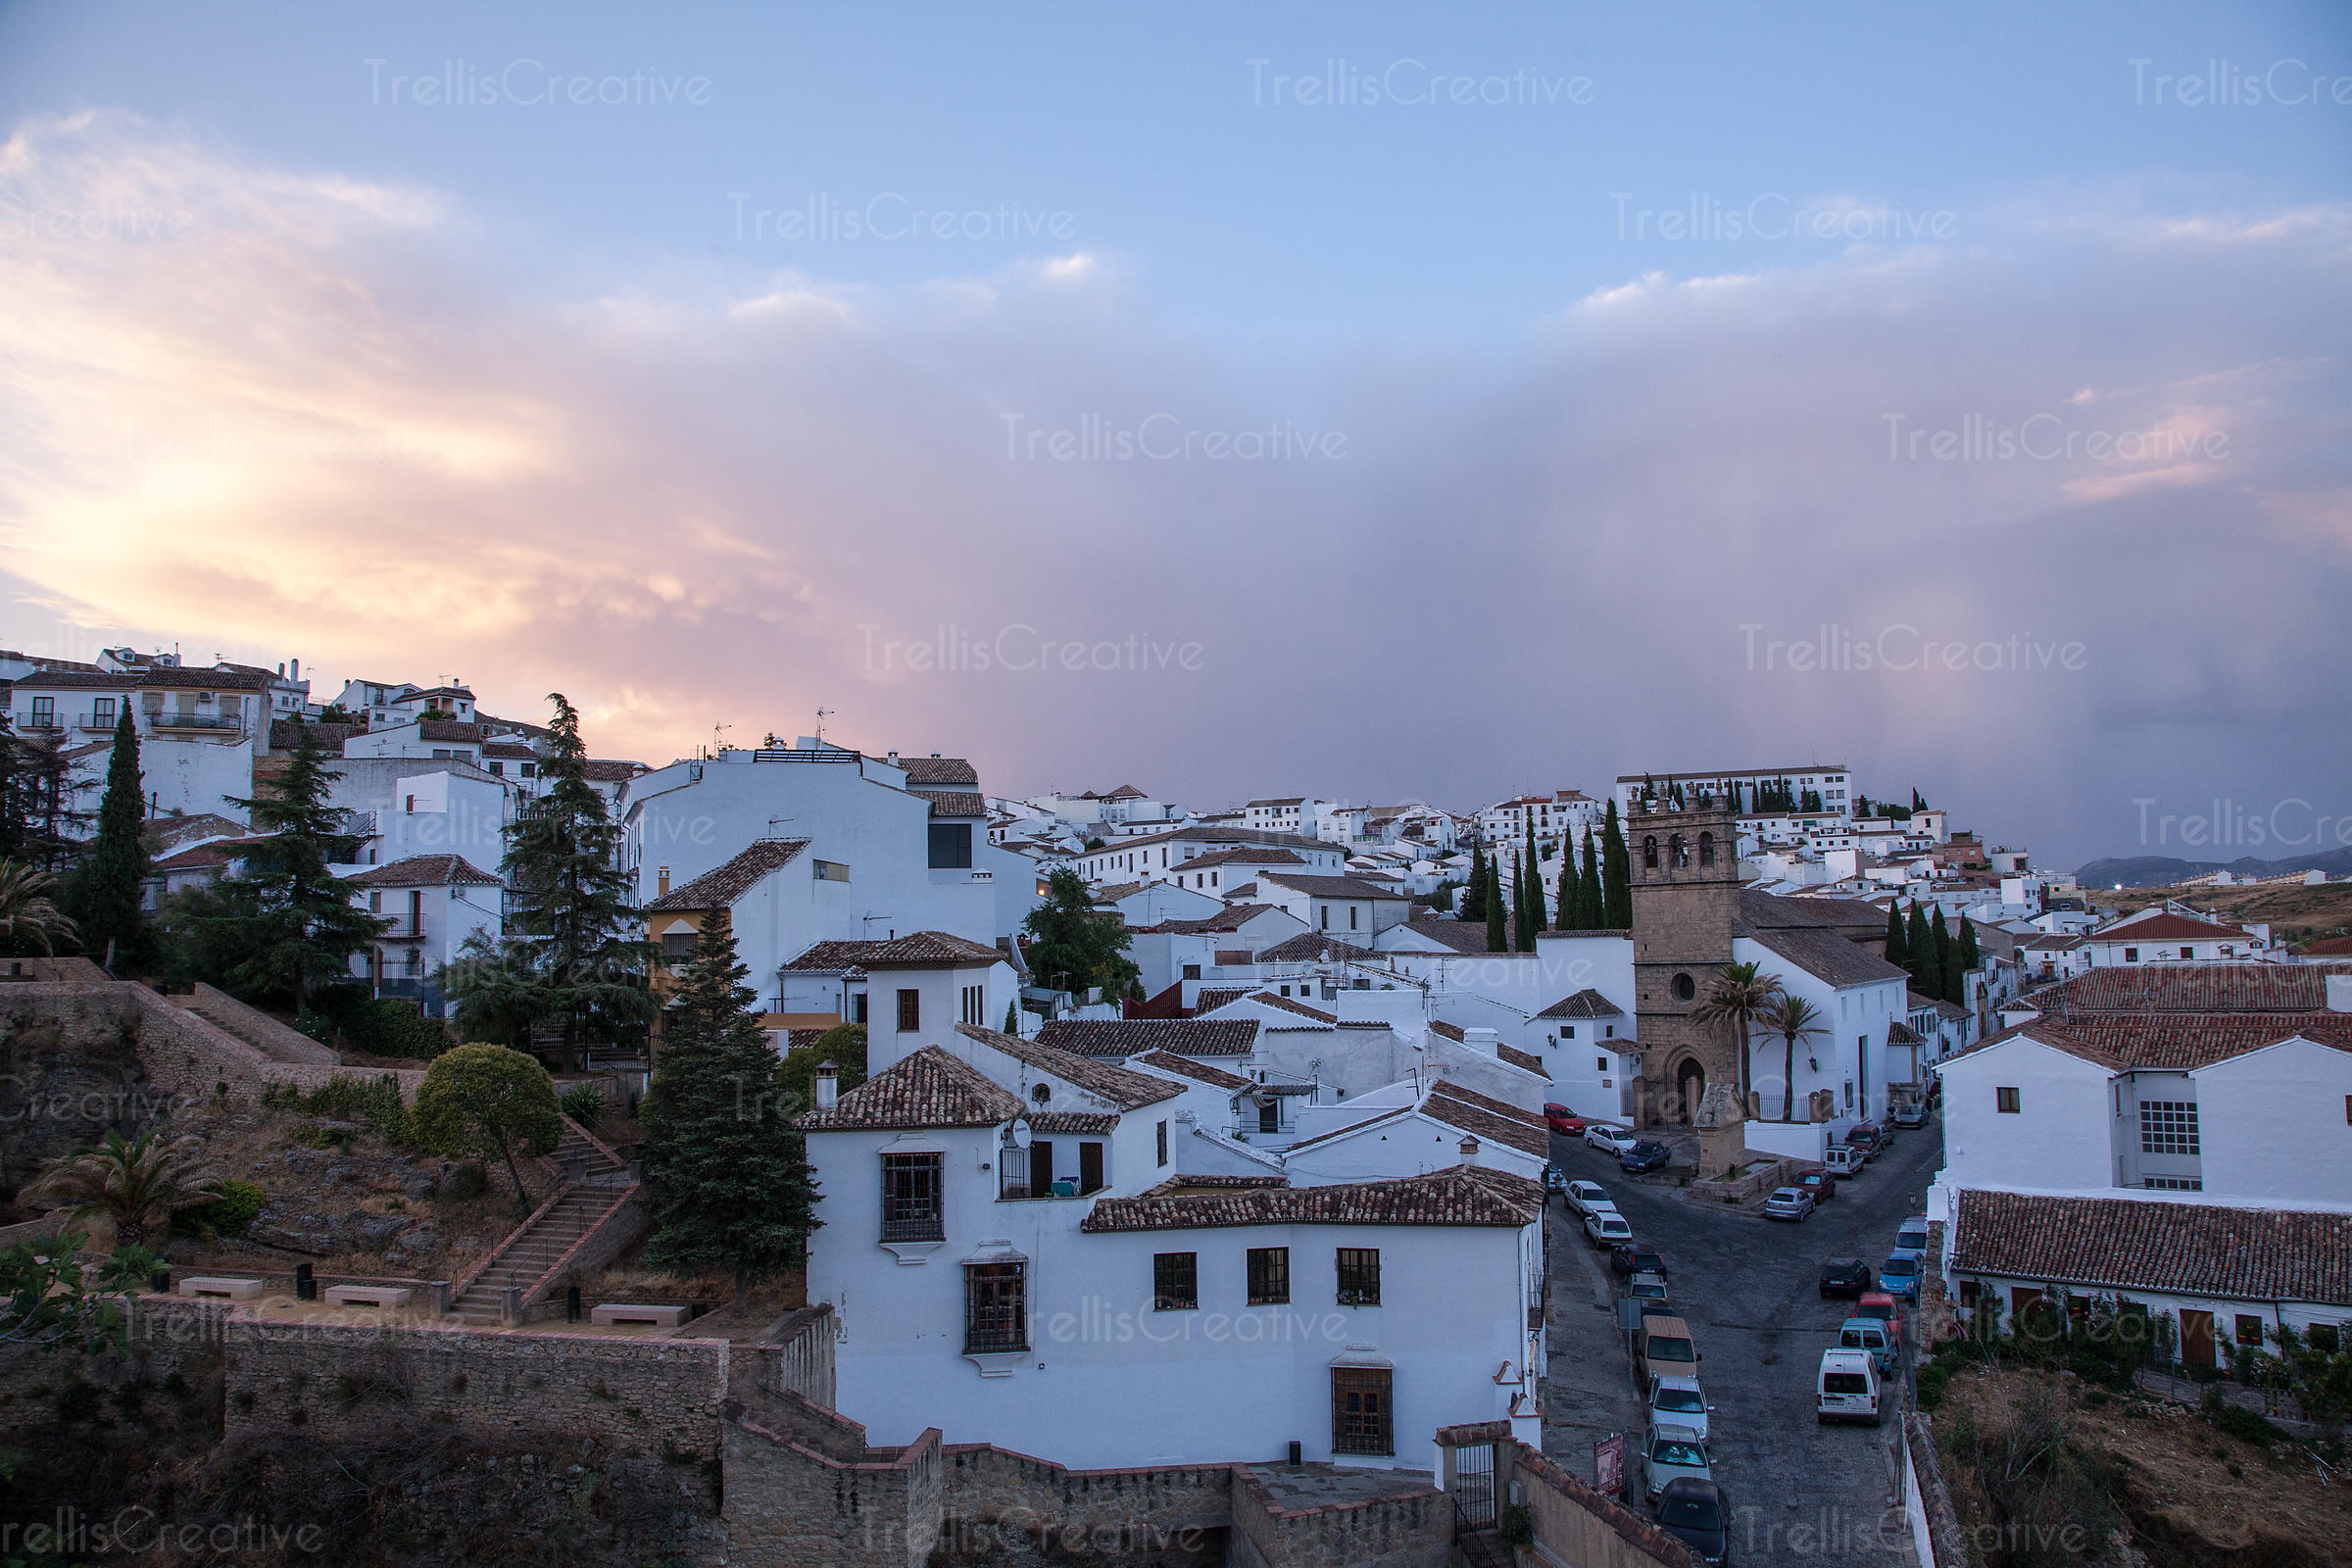 Typical houses in the historic center of Ronda, Malaga, Spain